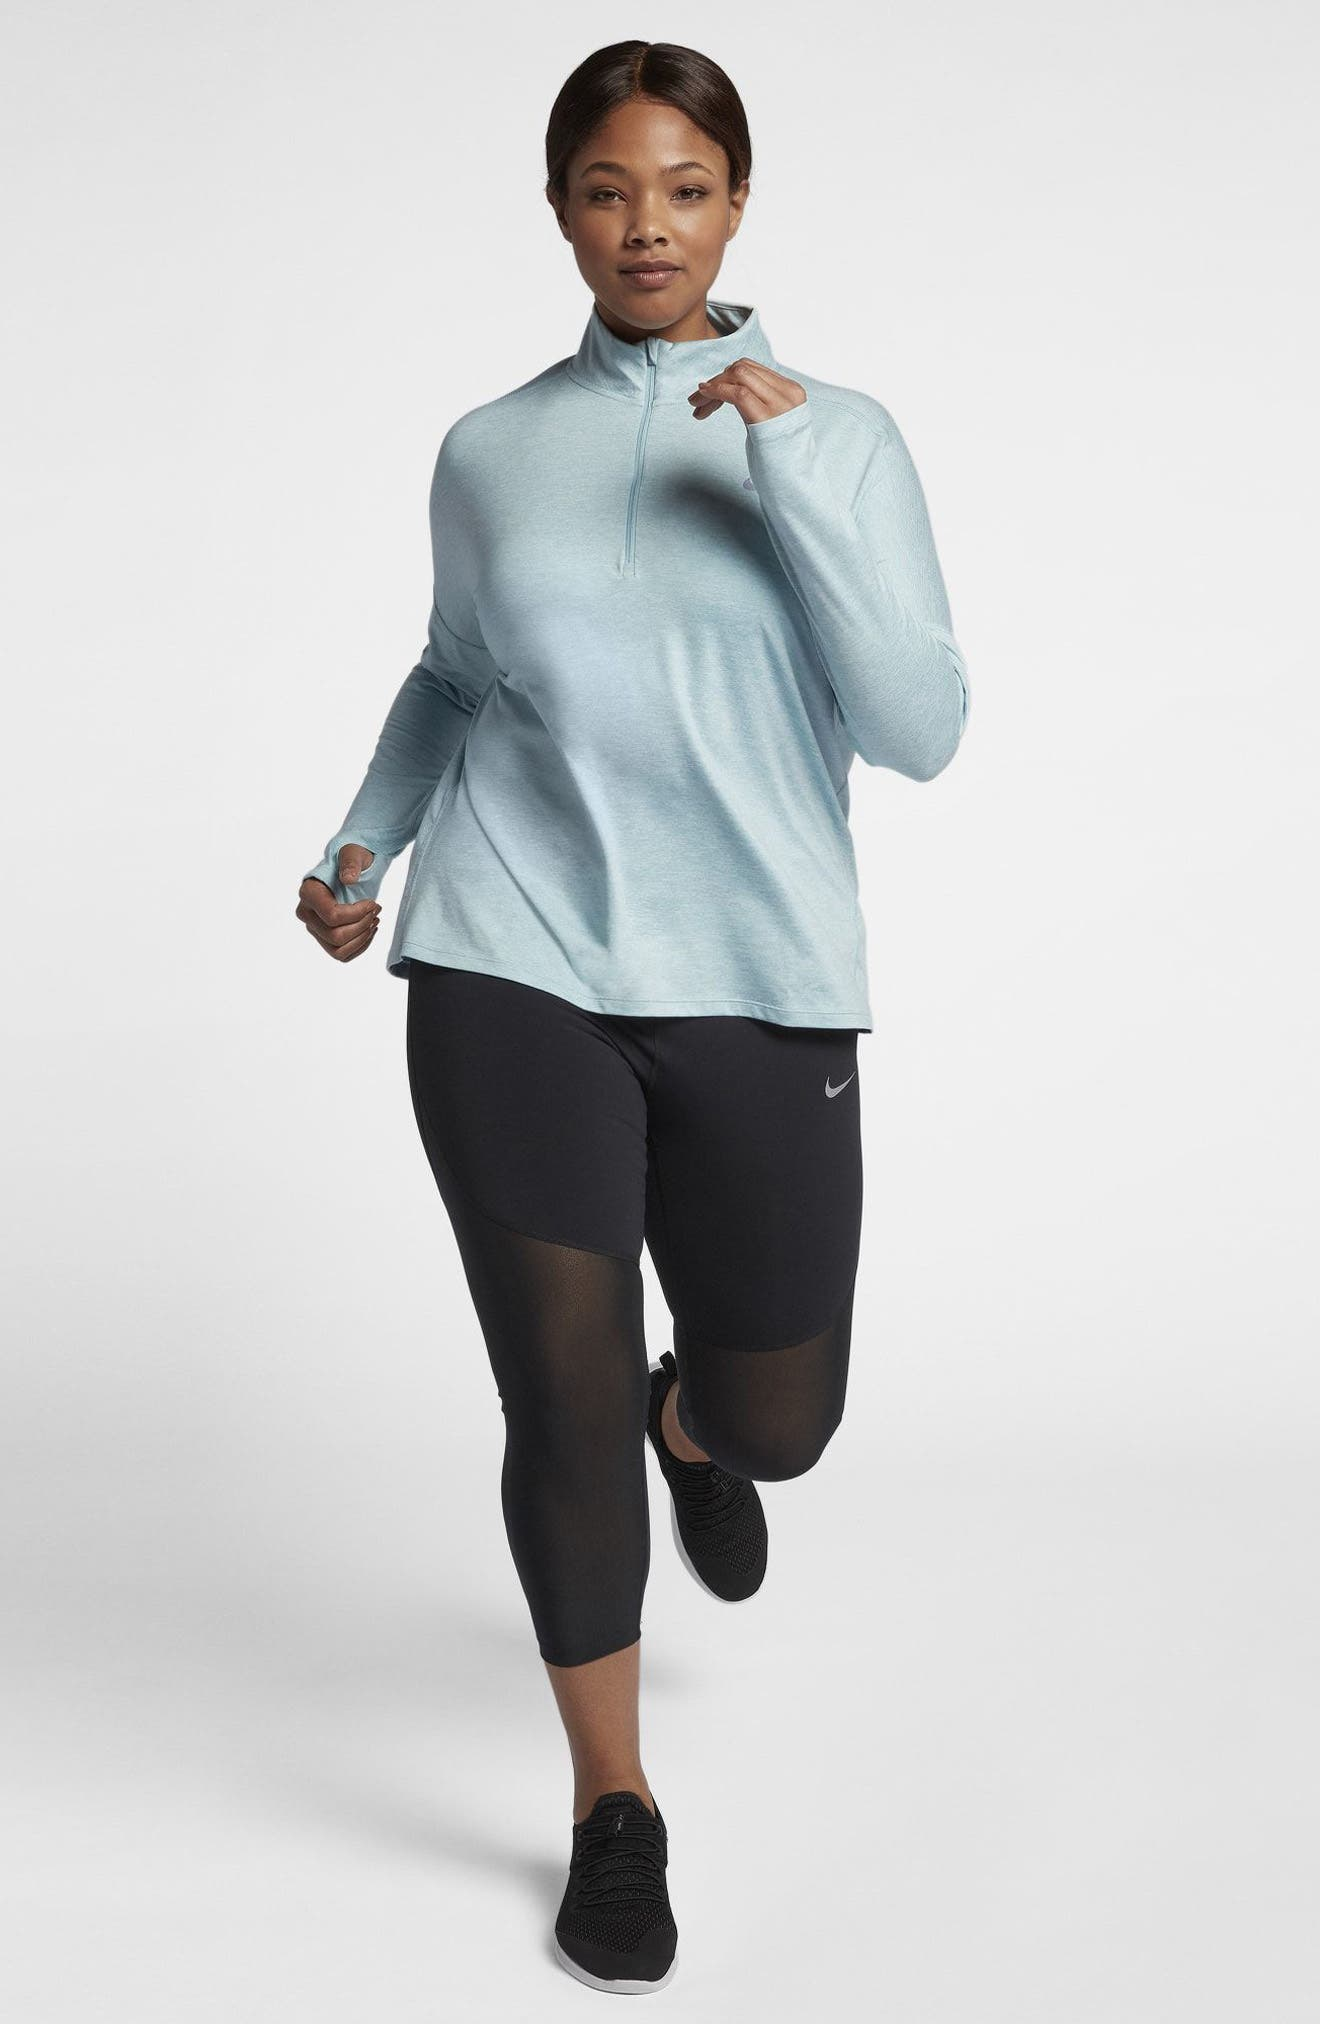 Dry Element Half Zip Top,                             Alternate thumbnail 6, color,                             Ocean Bliss/ Heather